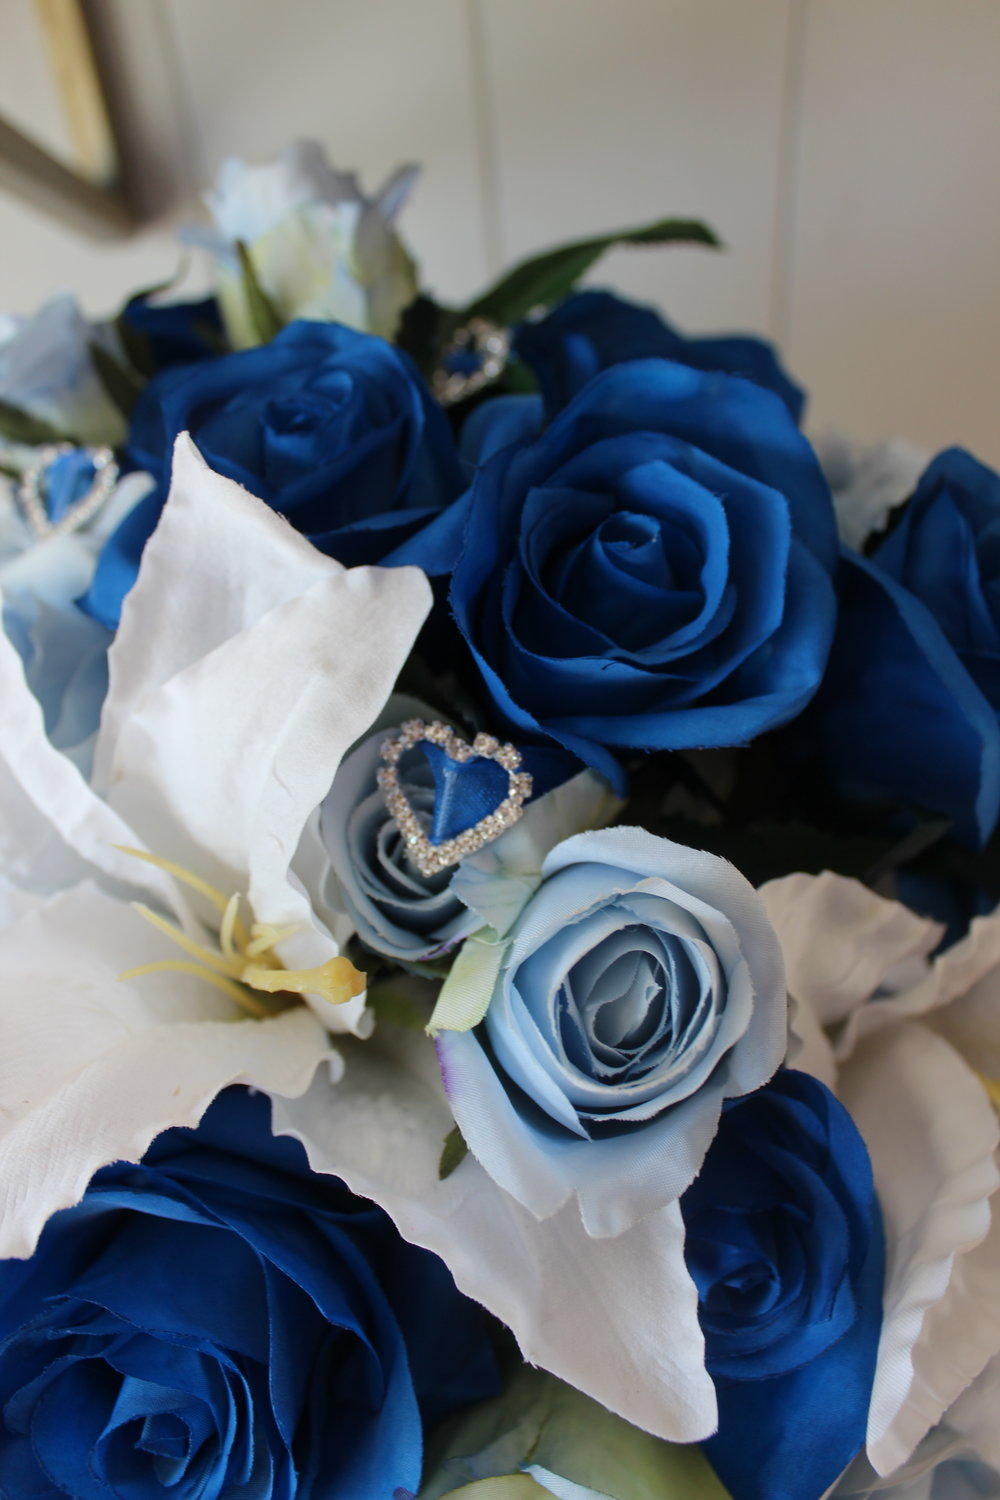 blue-silk-wedding-flowers-royal-blue-light-blue.jpg